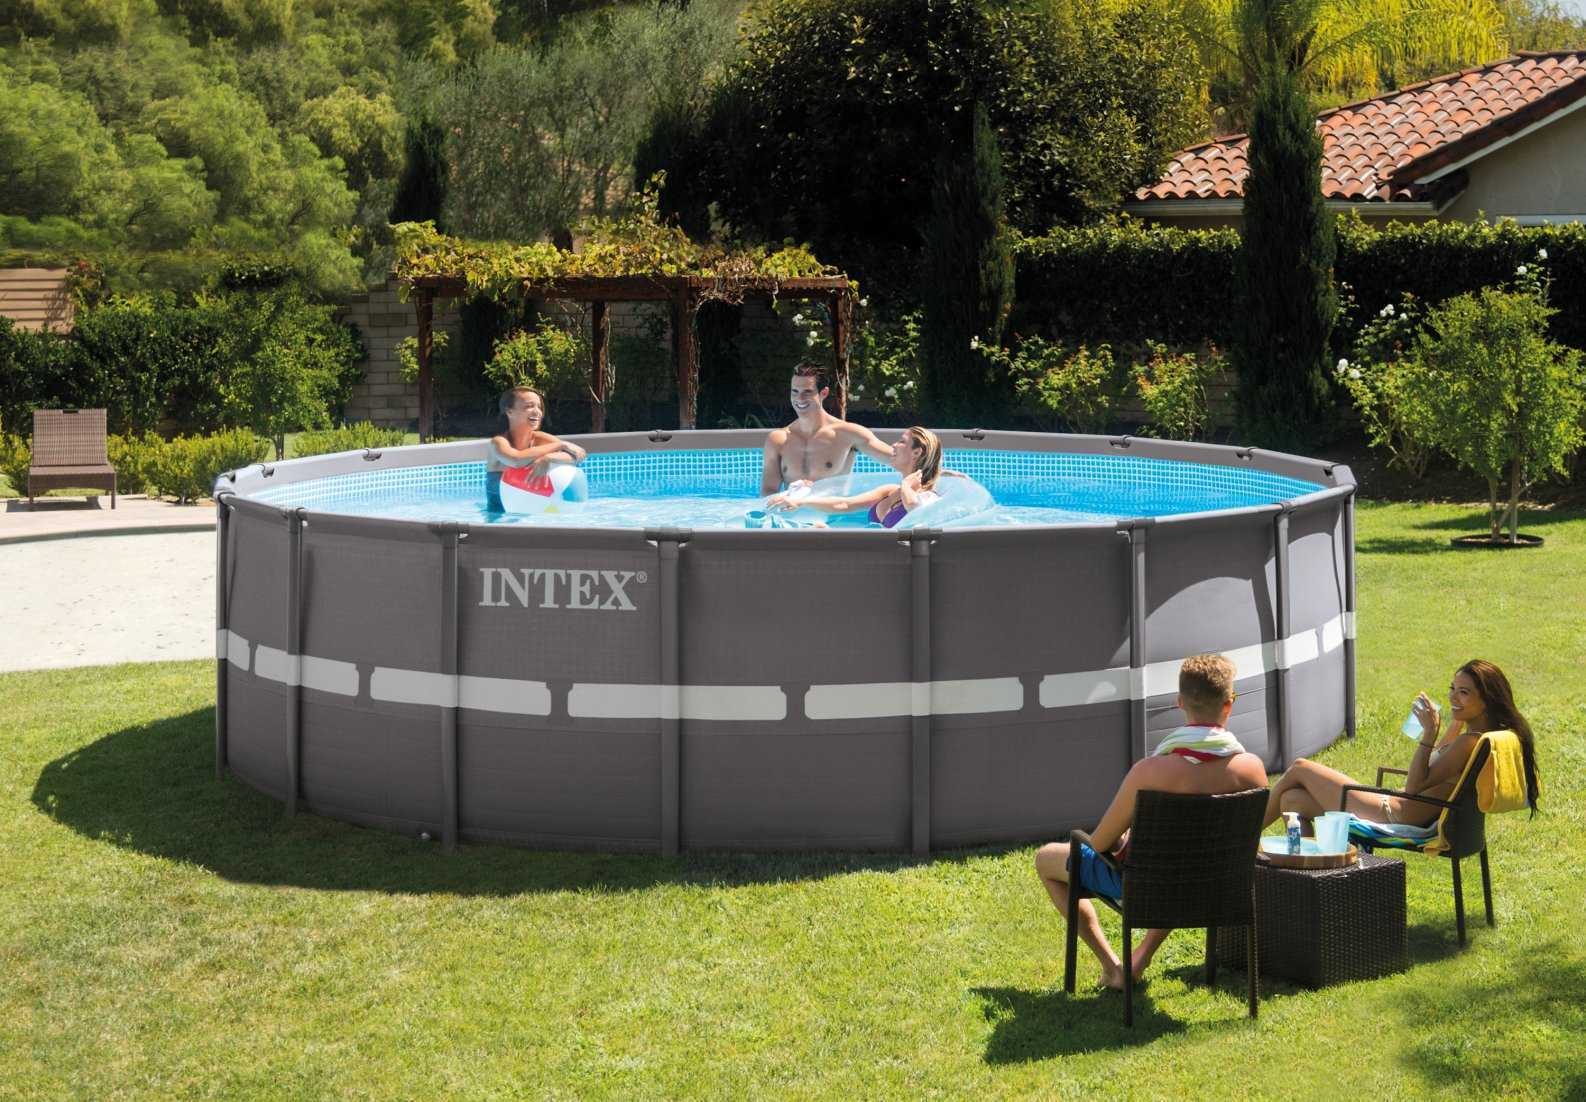 Intex Ultra Frame 5,49 X ↕1,32M concernant Piscine Intex Ultra Frame